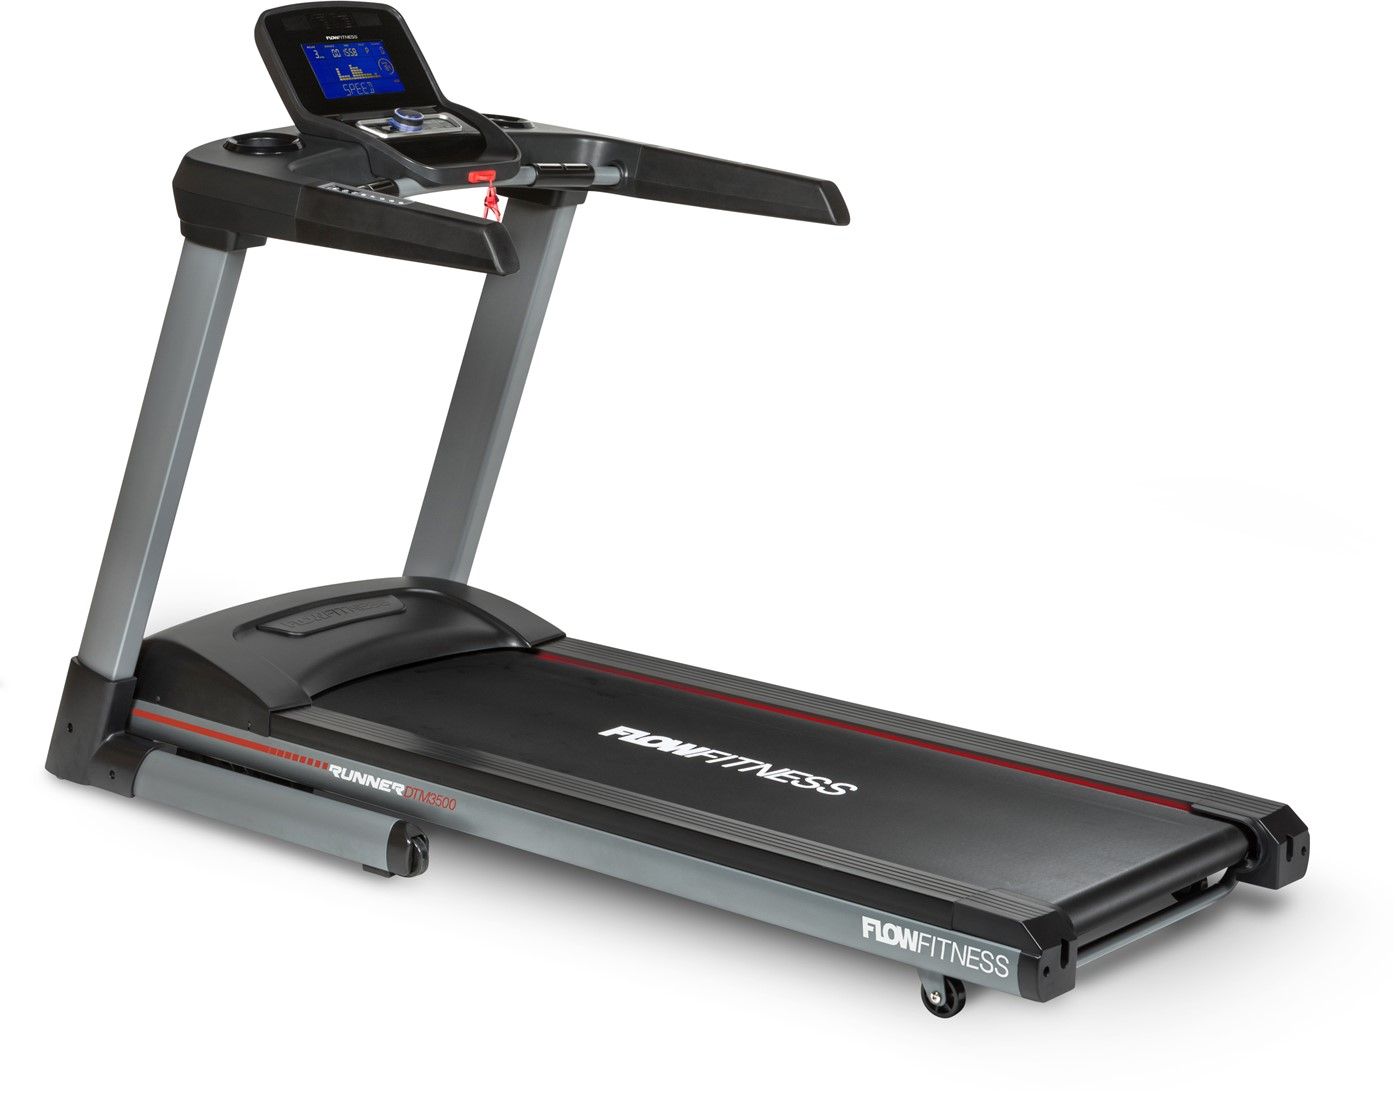 4. Flow Fitness Runner DTM3500i